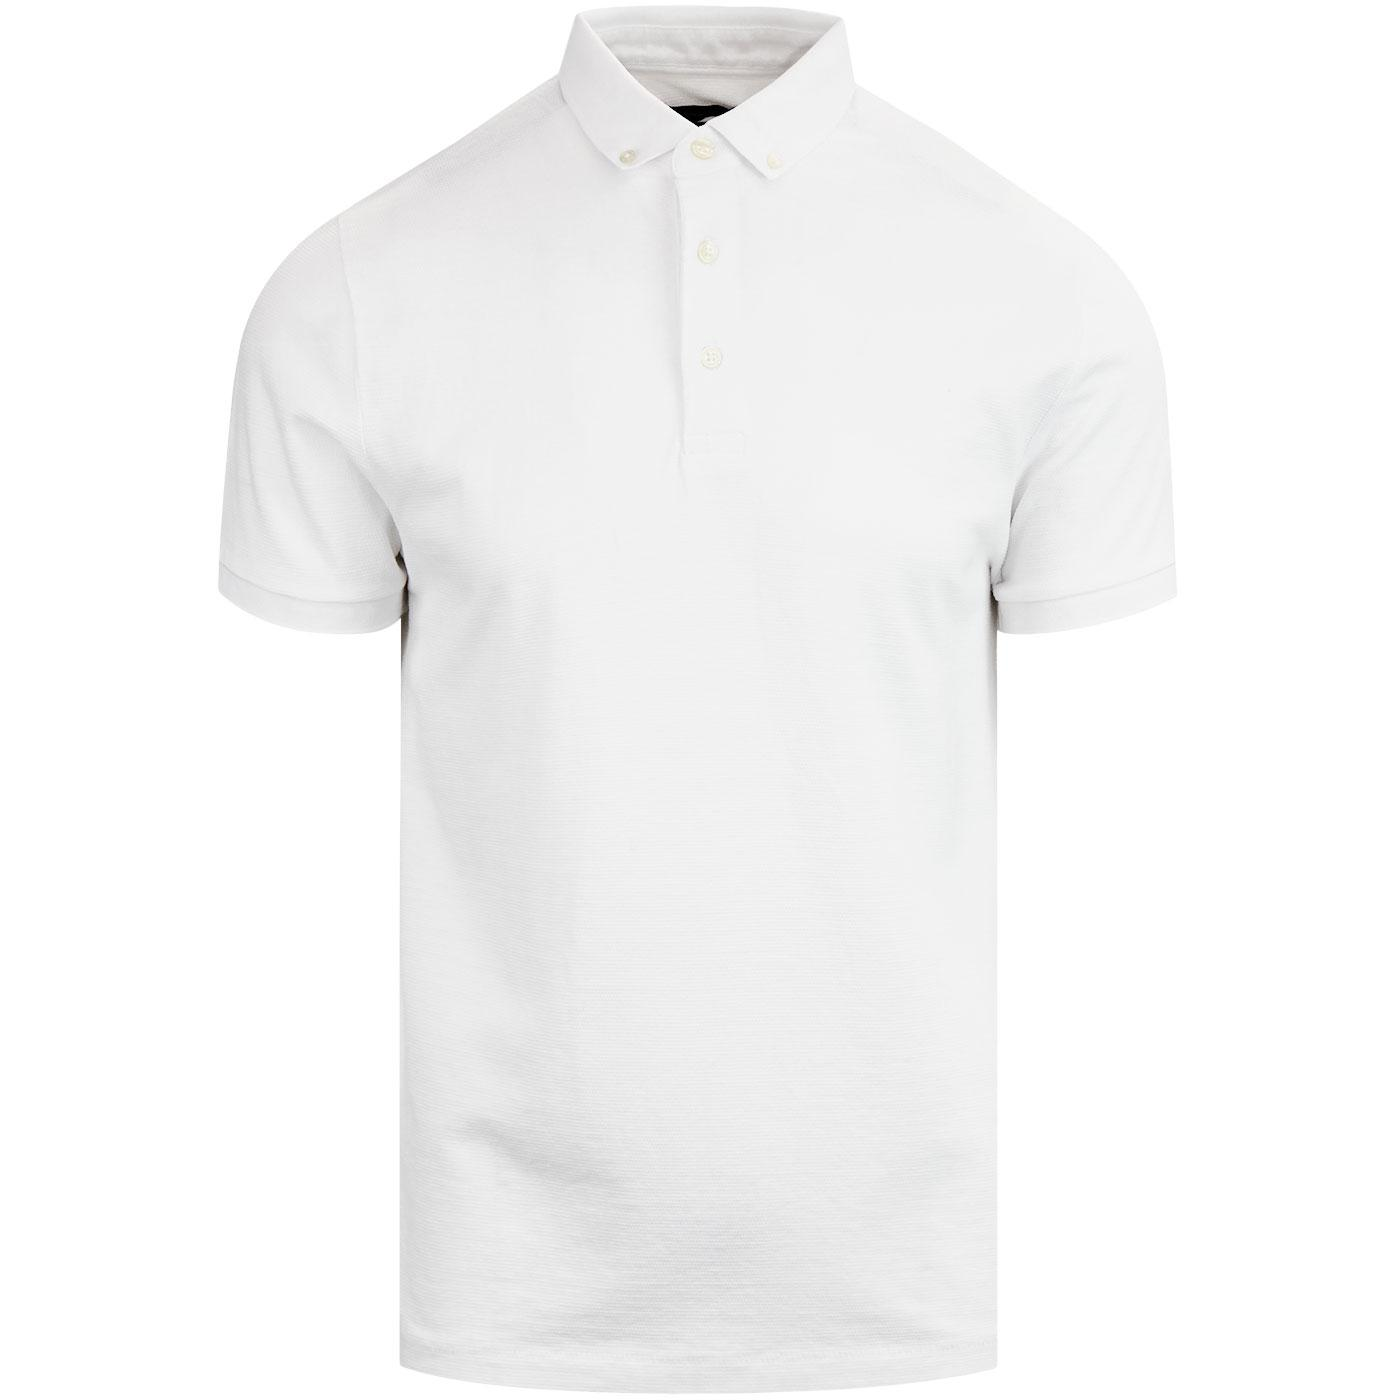 Parched FRENCH CONNECTION Mod Textured Polo WHITE